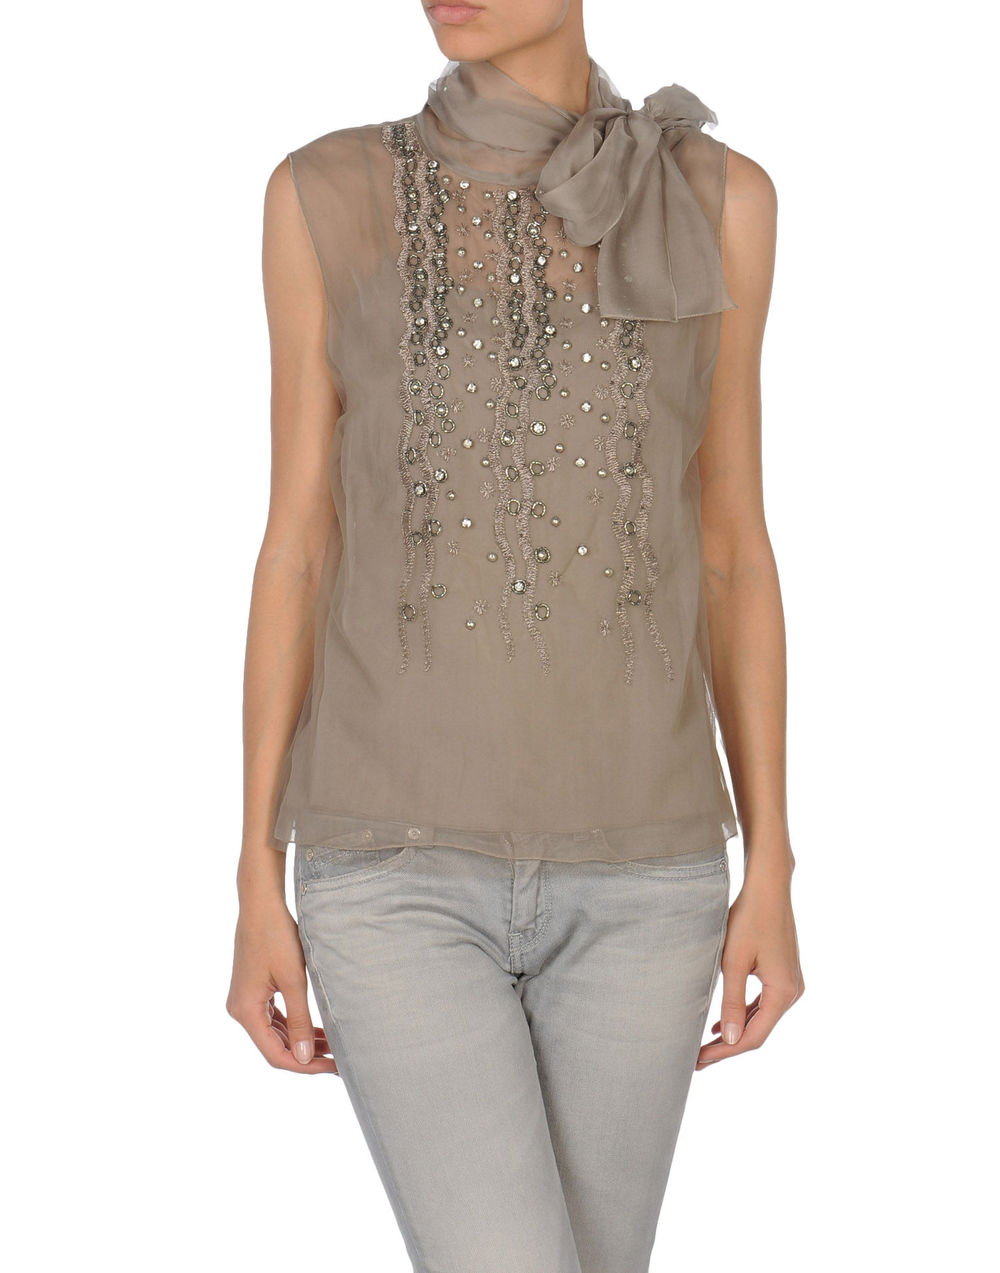 alberta-ferretti-grey-top-product-1-4477545-386081983.jpeg